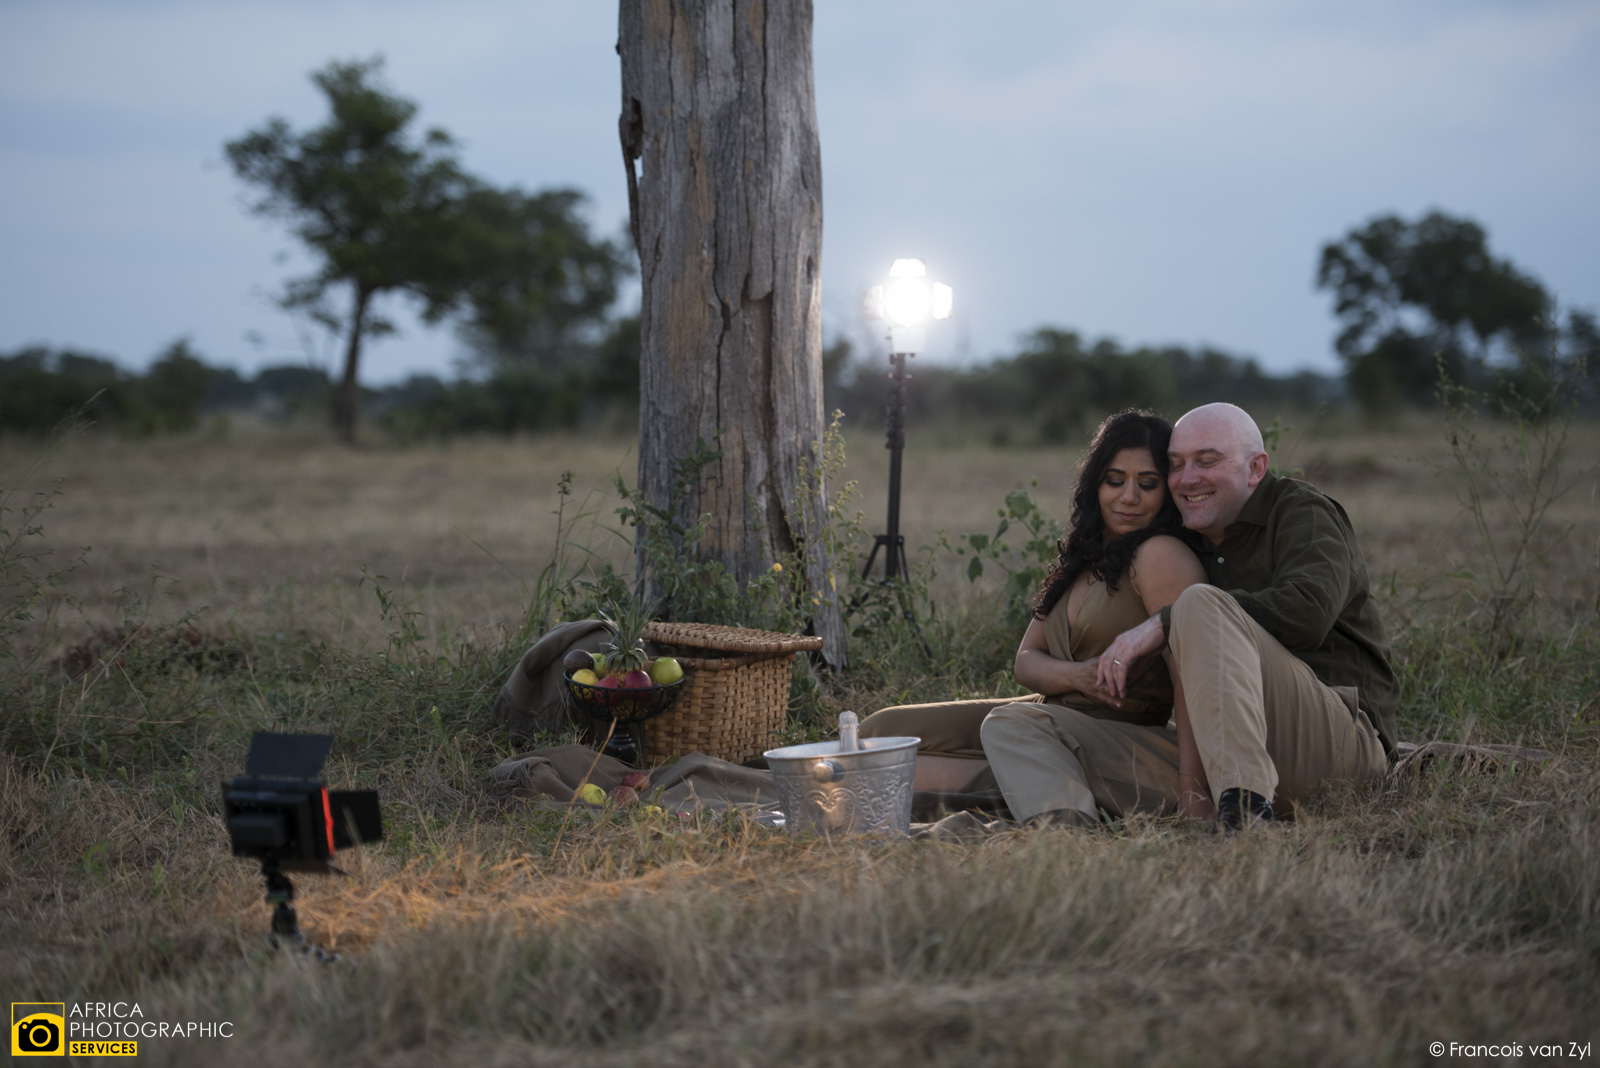 Francois van Zyl Wedding Portrait Photographer Mpumalanga South Africa  D817090 - Safari Portraiture, a behind the scenes look